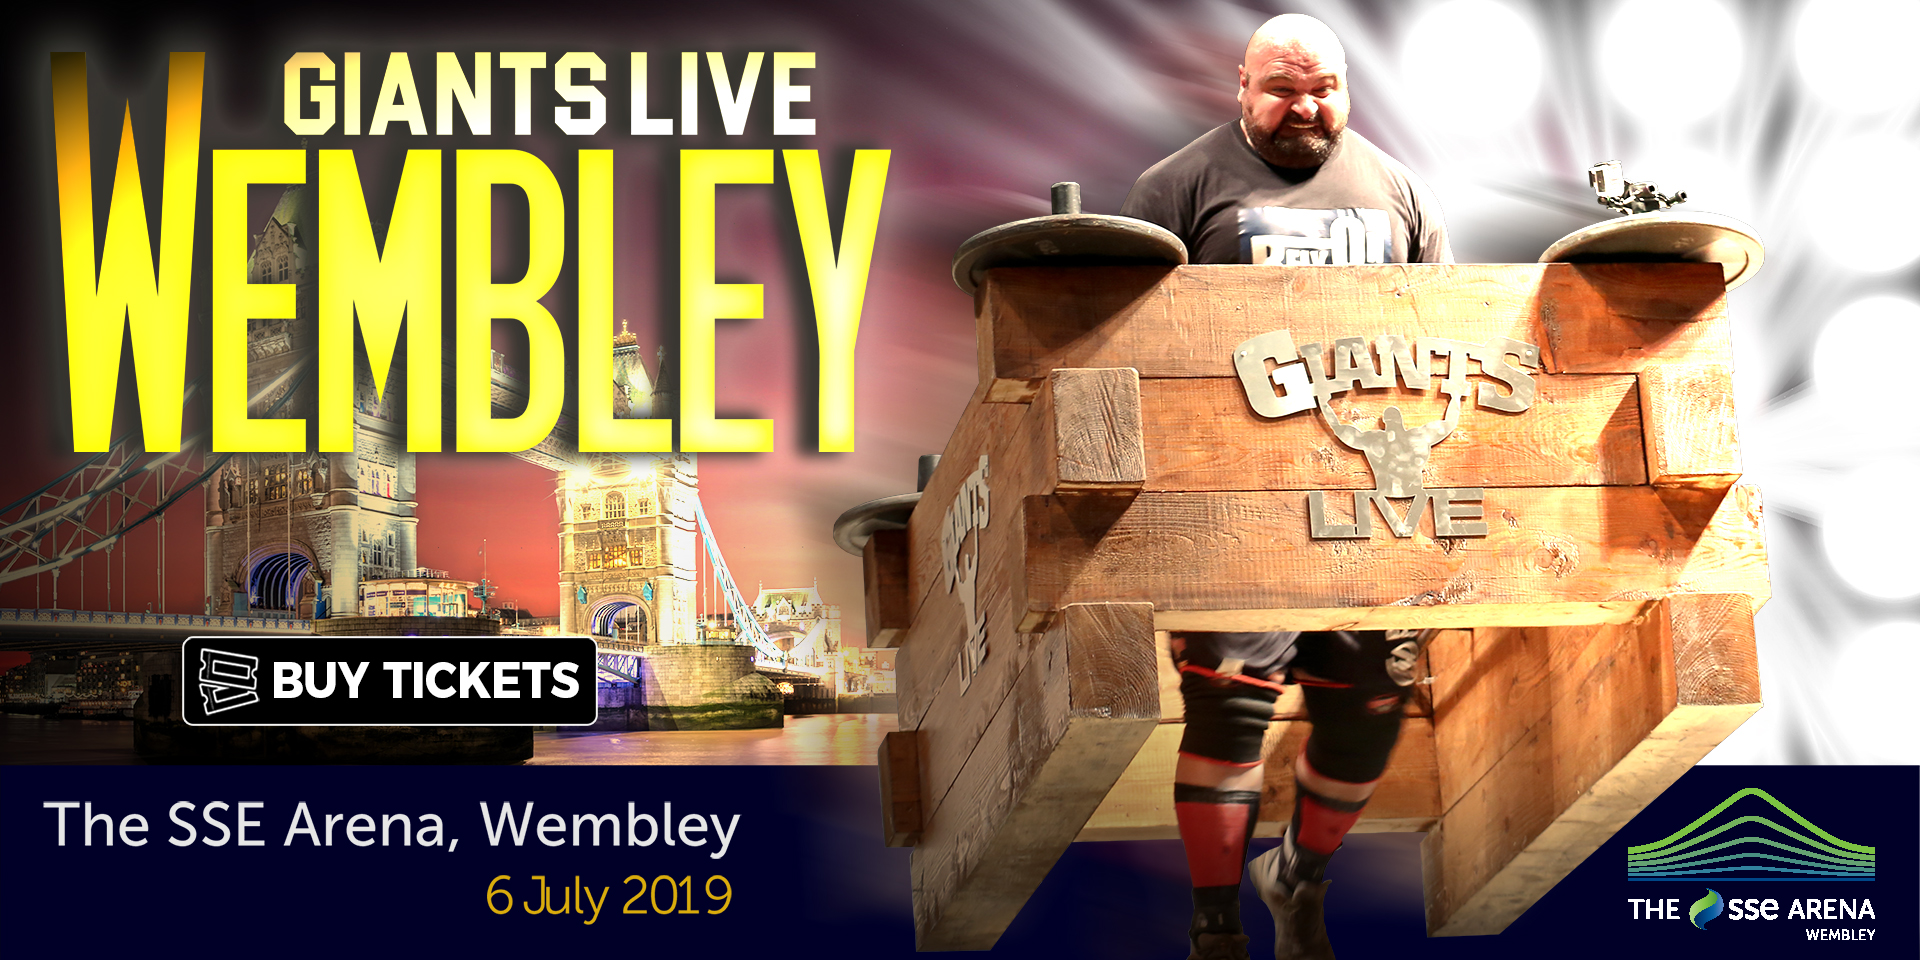 The GIANTS are coming to WEMBLEY - Get your tickets NOW!